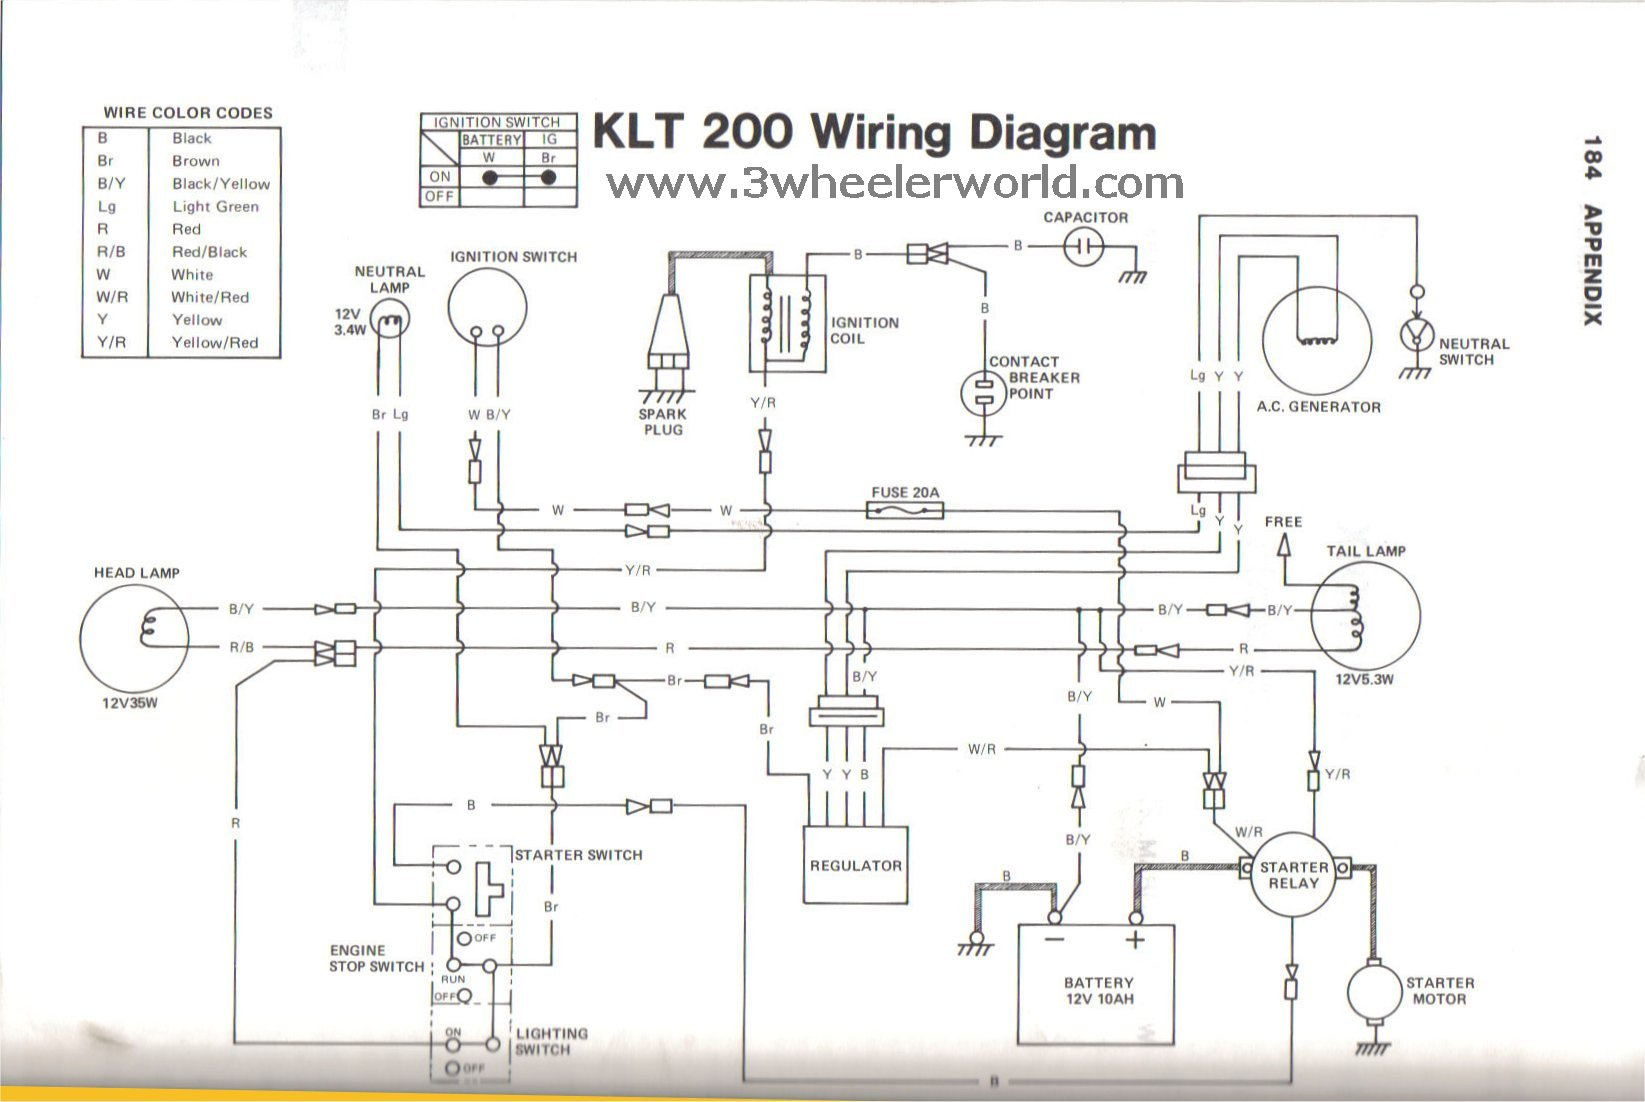 Klt 250 Wiring Diagram - Wiring Diagrams Register Kawasaki Wiring Diagrams on